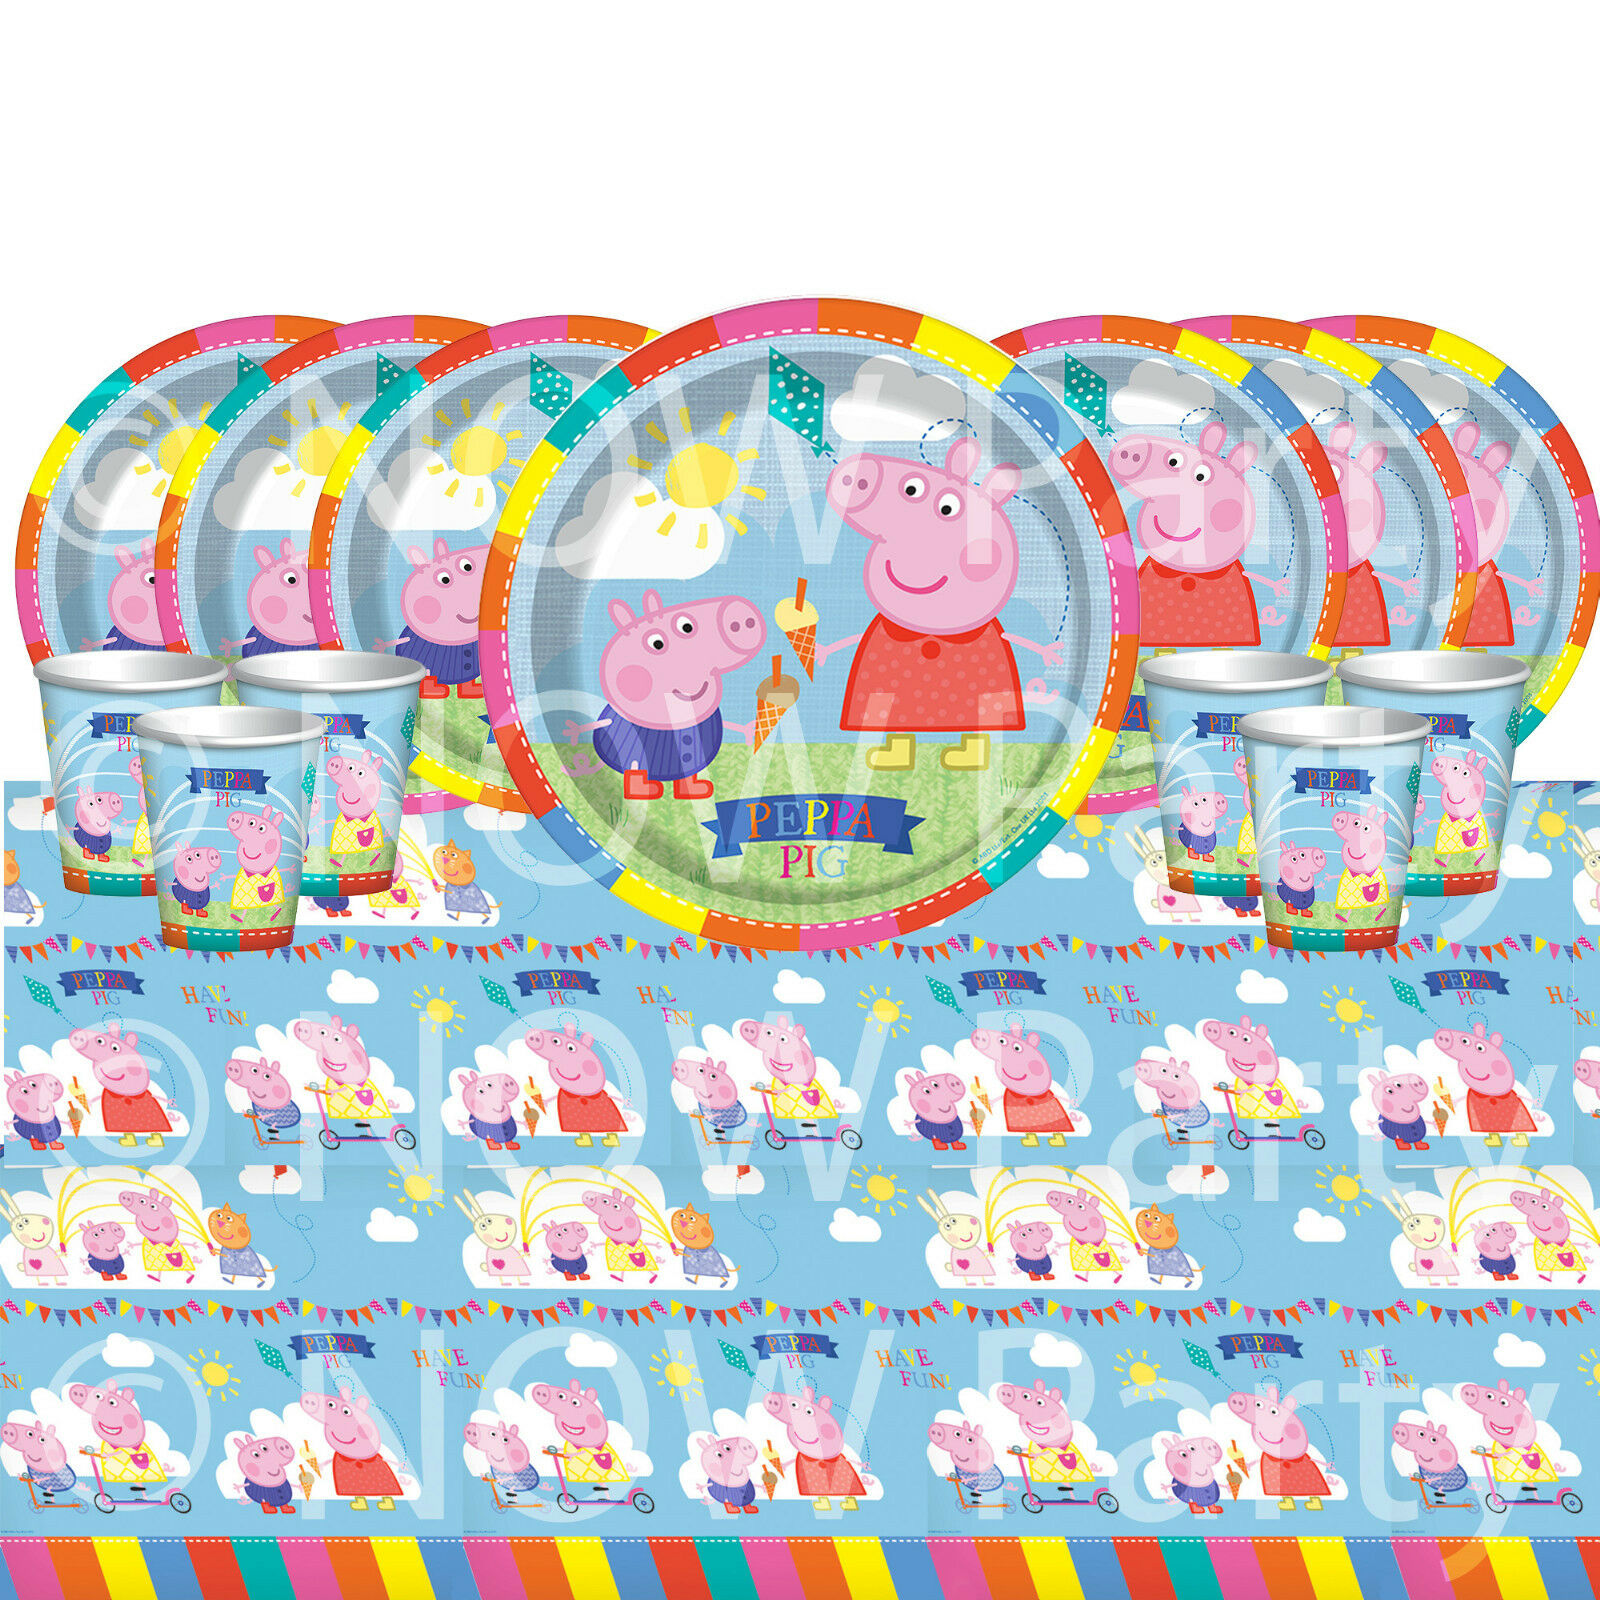 PEPPA PIG Tableware Plates Cups Napkins Tablecover PARTY KITS 8 - 48 Guests | eBay  sc 1 st  eBay & PEPPA PIG Tableware Plates Cups Napkins Tablecover PARTY KITS 8 - 48 ...